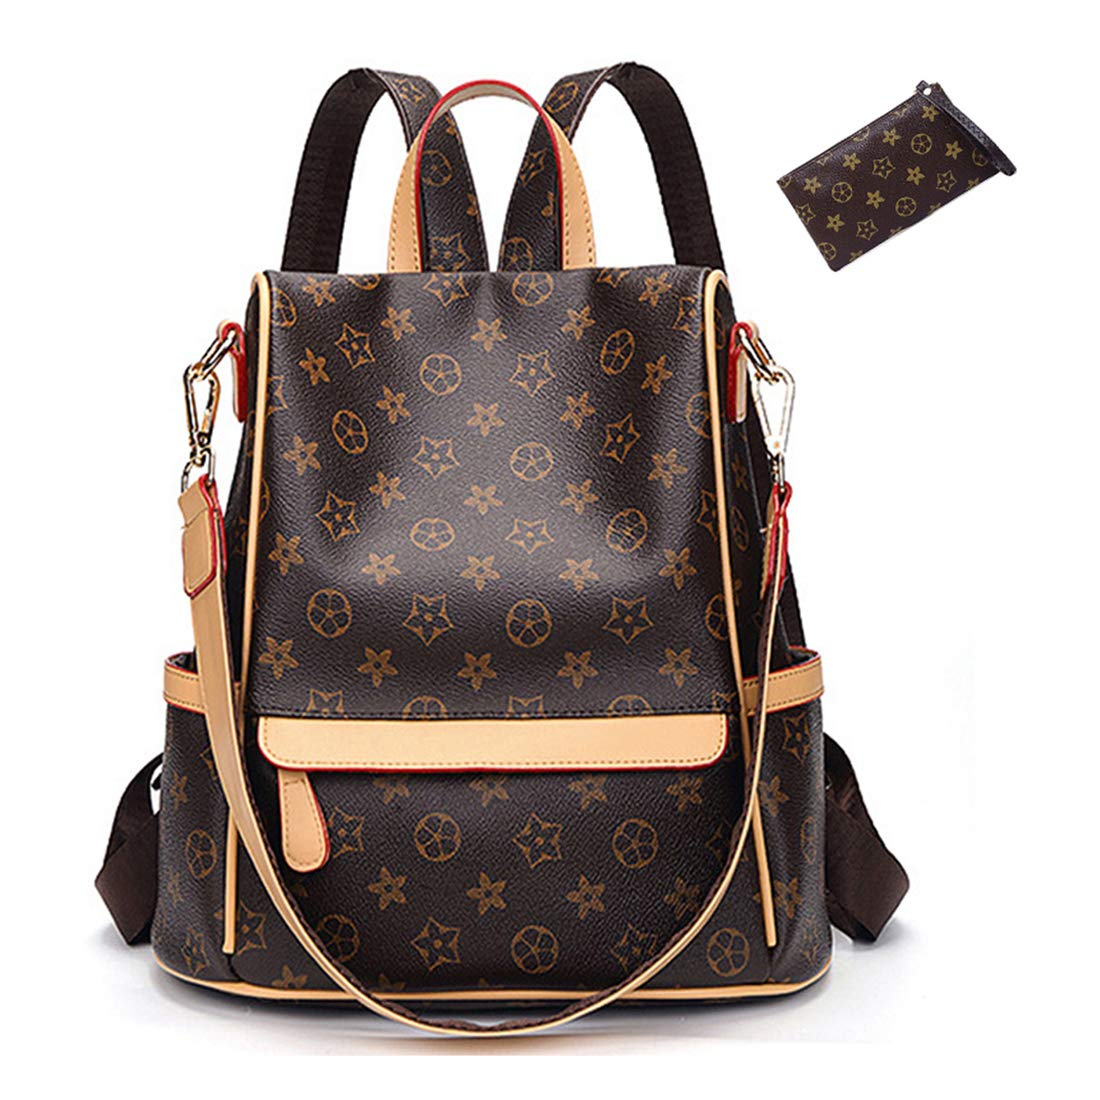 9668aa1d2e8 Casual Purse Fashion School Leather Backpack Crossbady Shoulder Bag Mini  Backpack for Women & Teenage Girls BLACK BROWN